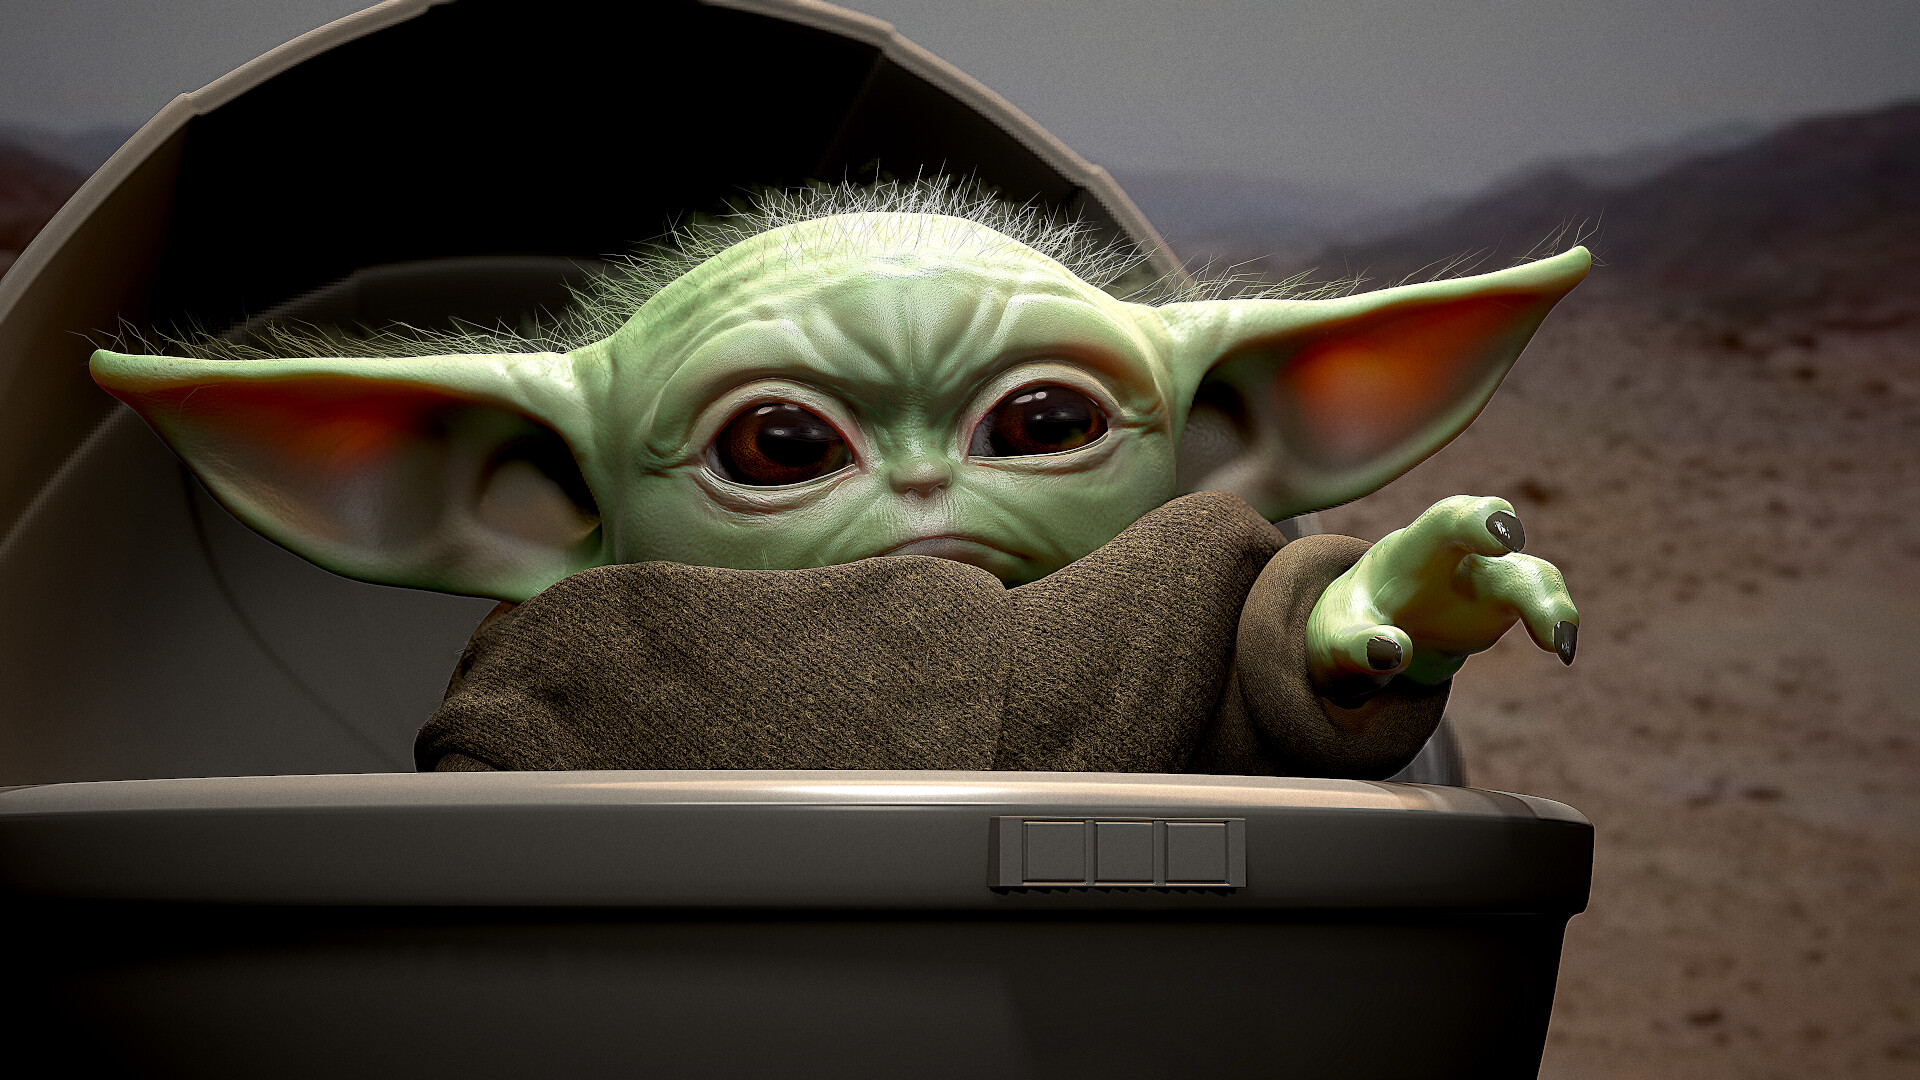 Desktop wallpaper - Baby Yoda | HeroScreen